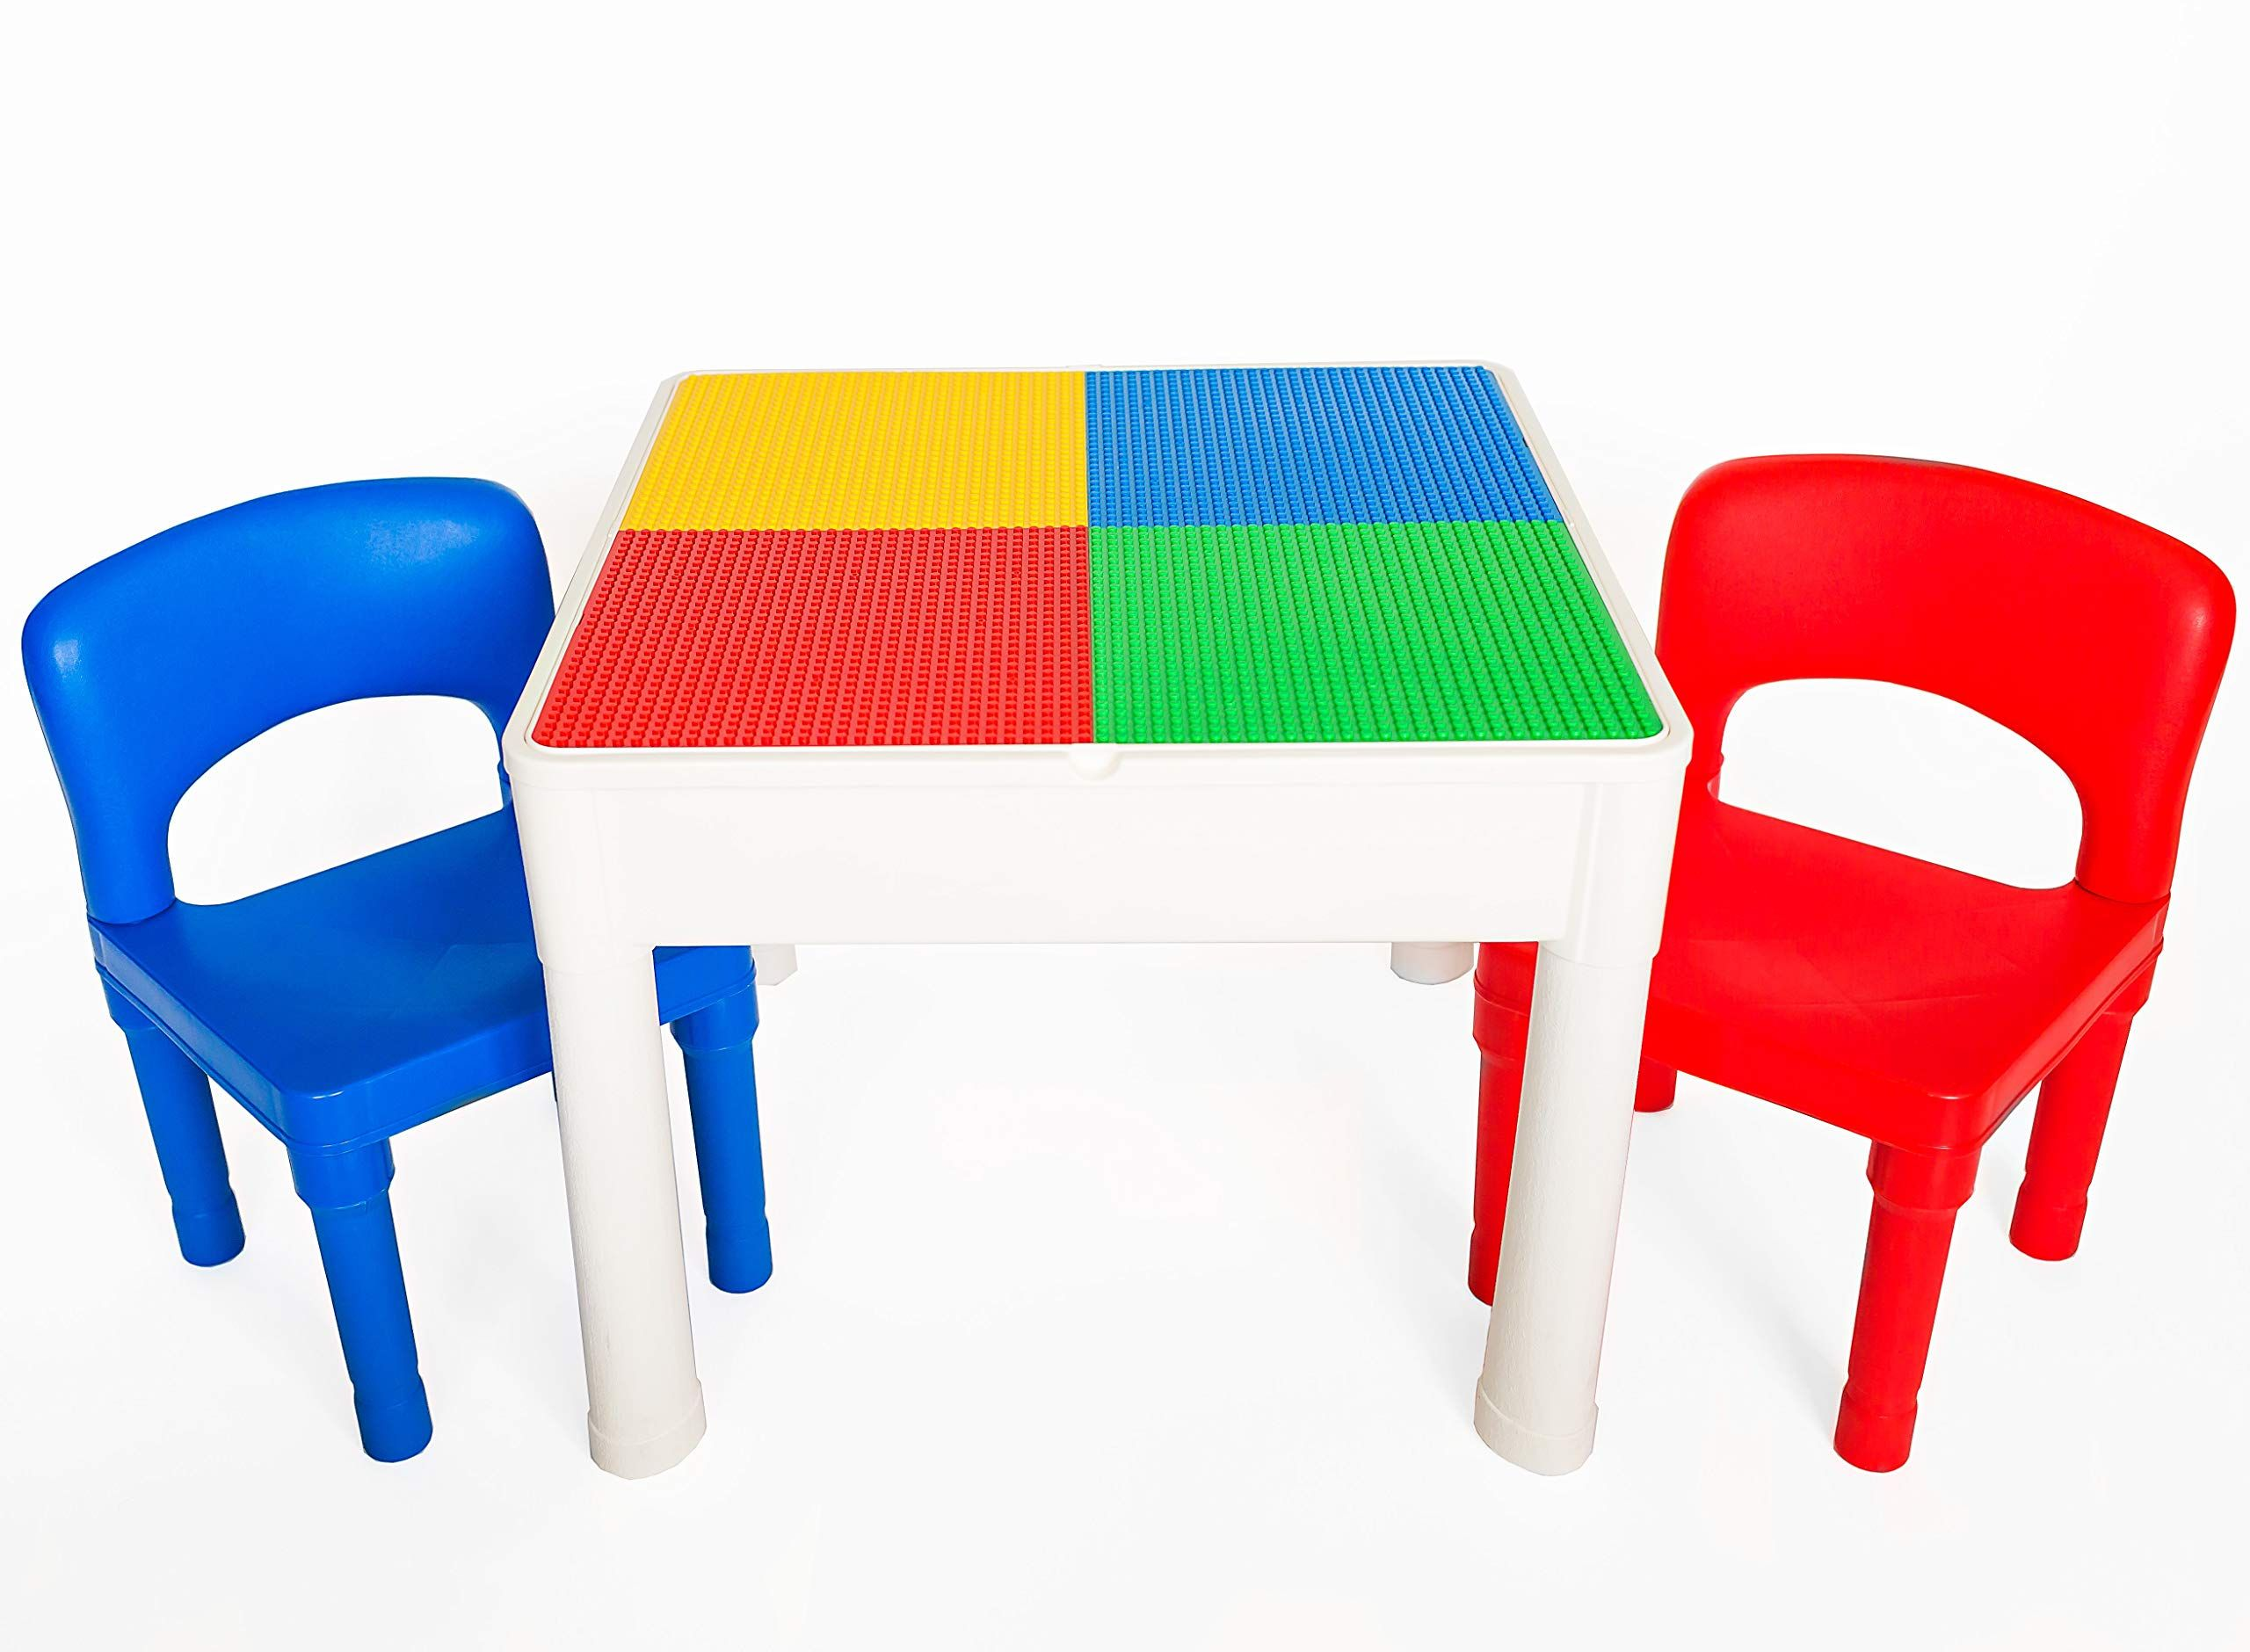 Fine Lego Table Kids 4 In 1 Play And Build Table Set For Indoor Download Free Architecture Designs Sospemadebymaigaardcom